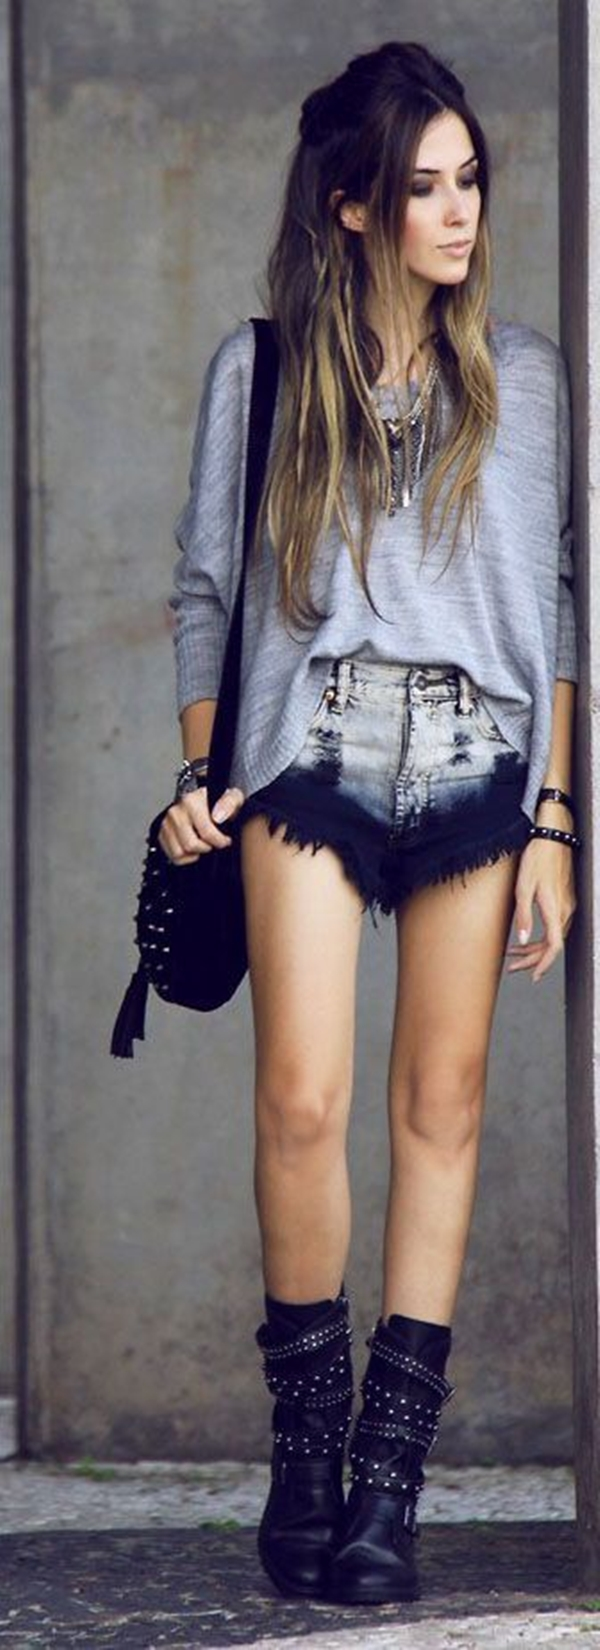 Cute Summer Outfits ideas for teens for 2015 (17)